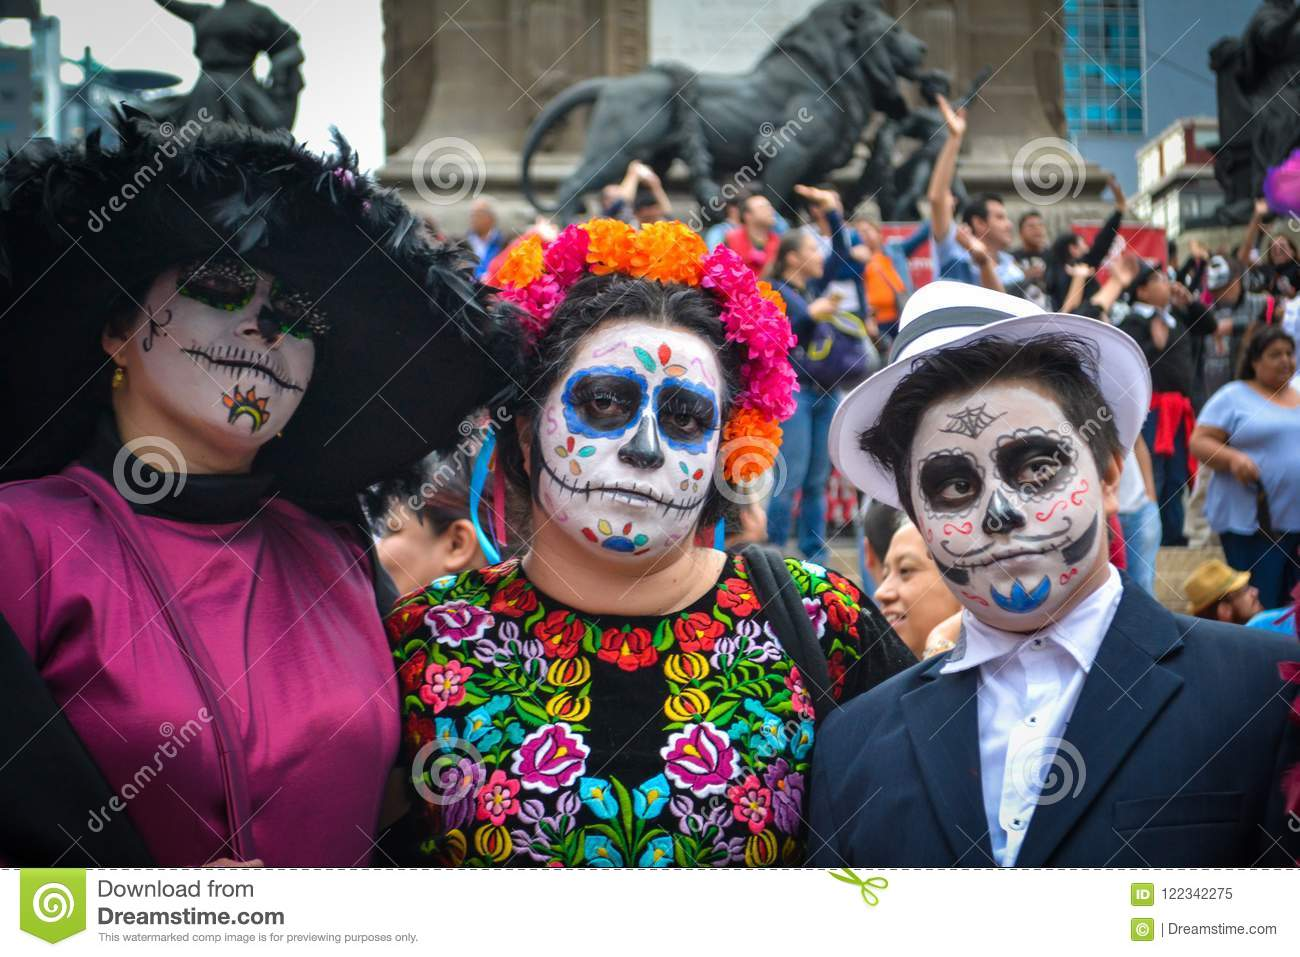 Mexico City, Mexico, ; October 26 2016: Portrait of a family in disguise at the Day of the Dead parade in Mexico City